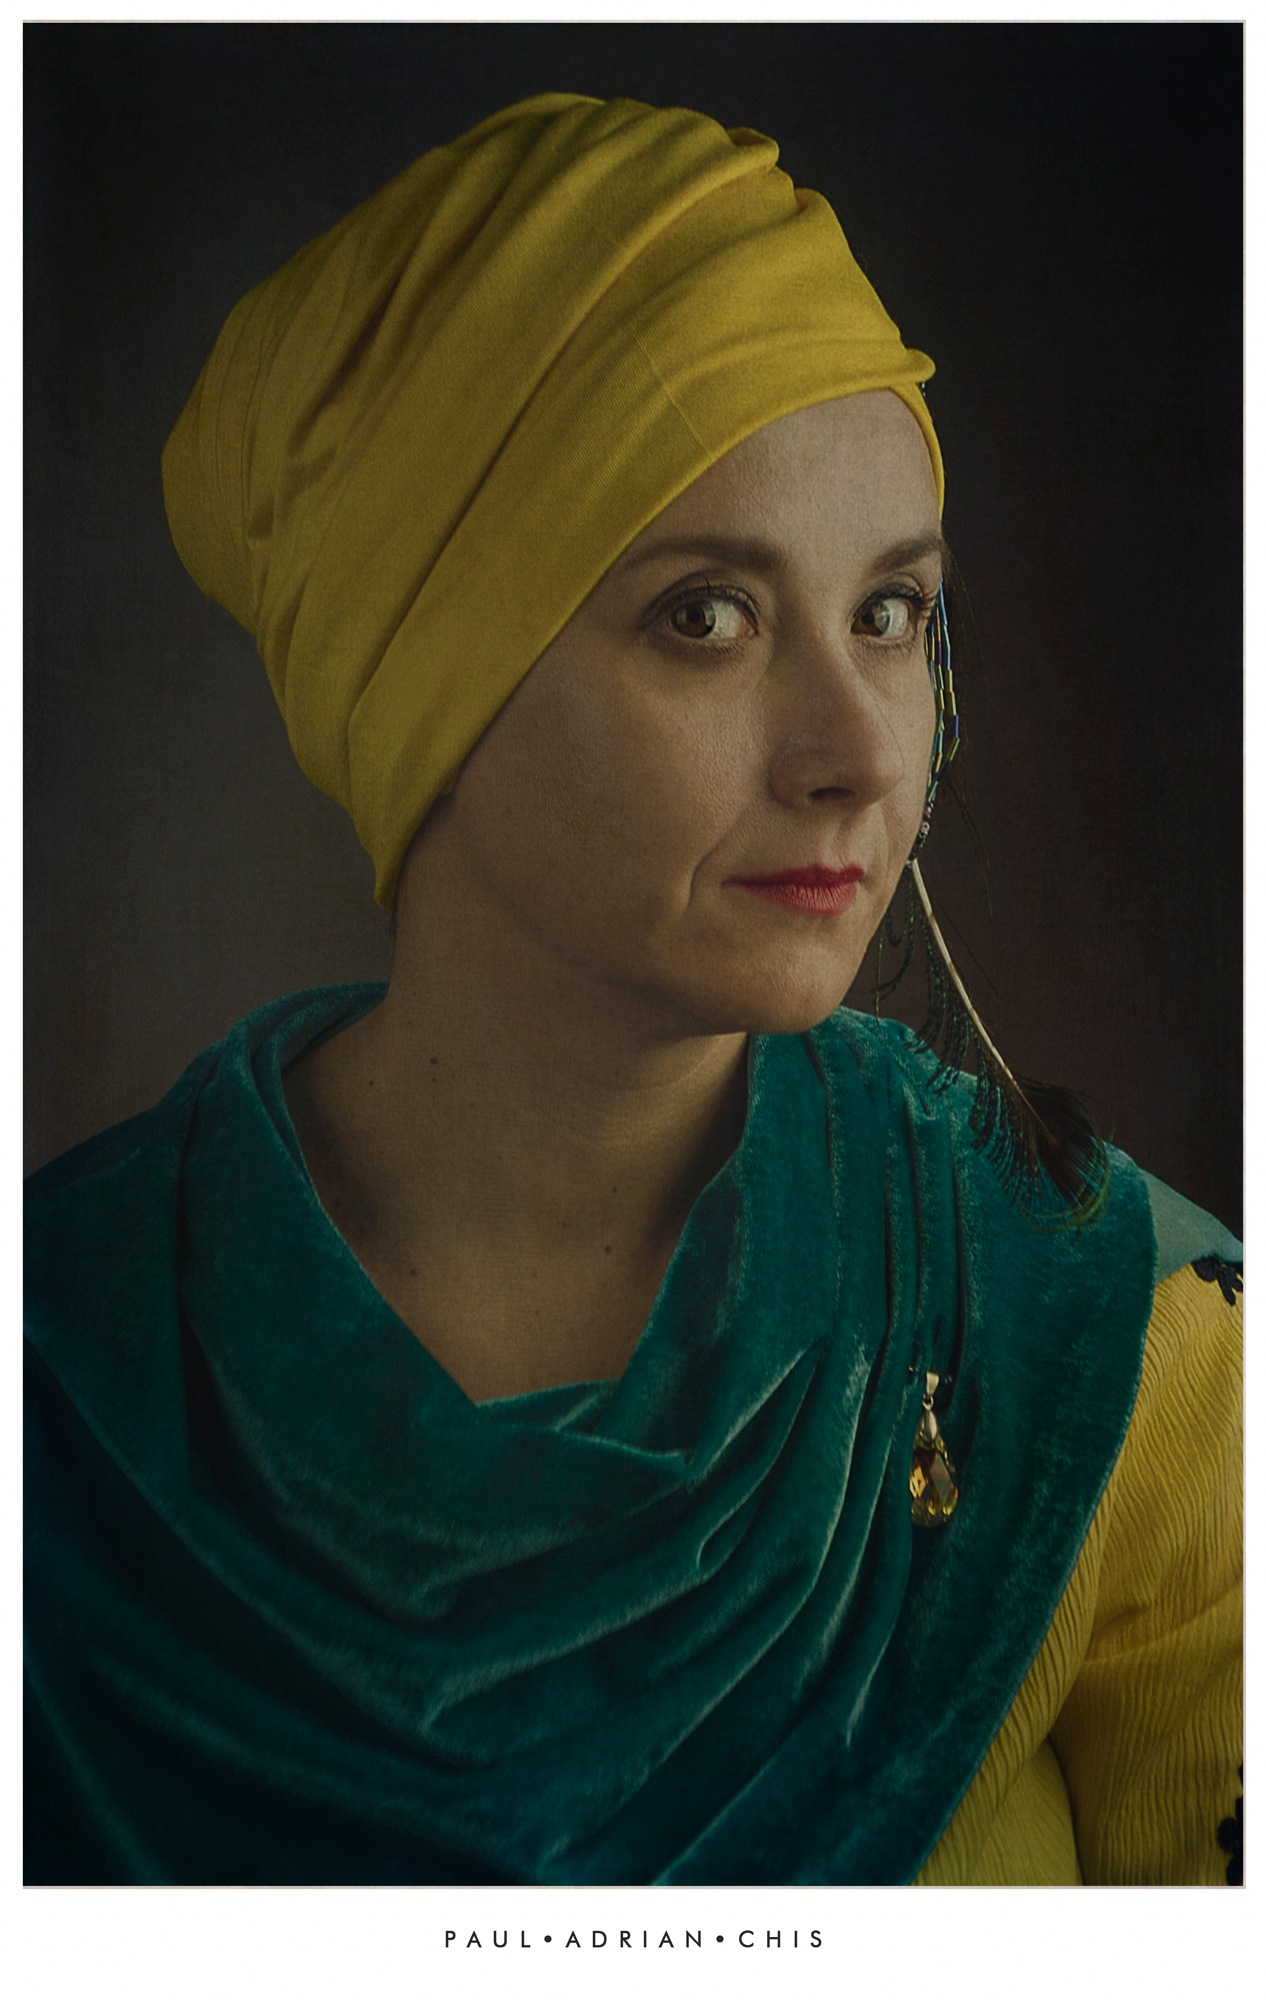 Woman with yellow turban by Paul Adrian Chis